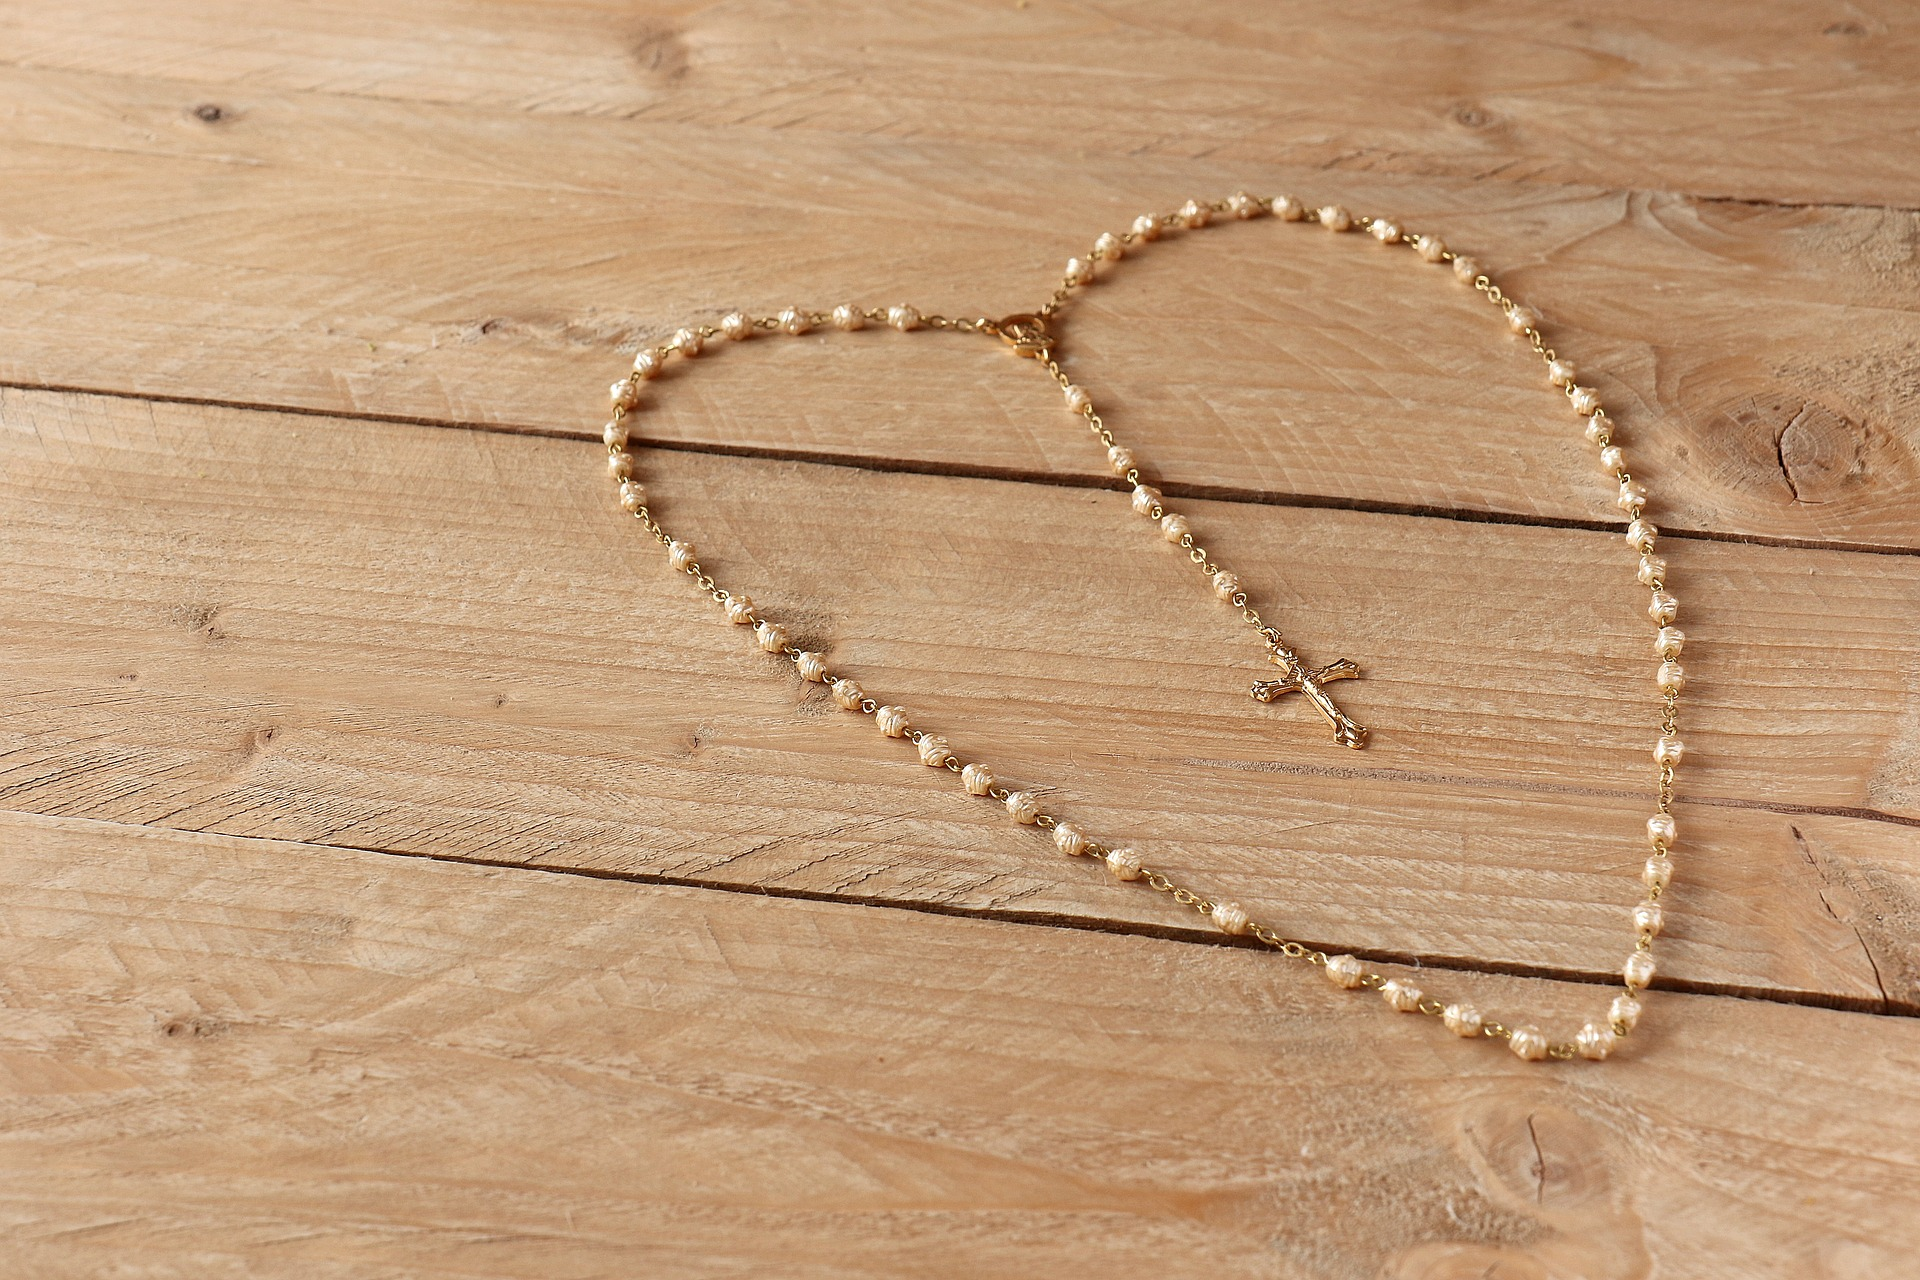 rosary in shape of a heart displayed on wooden table